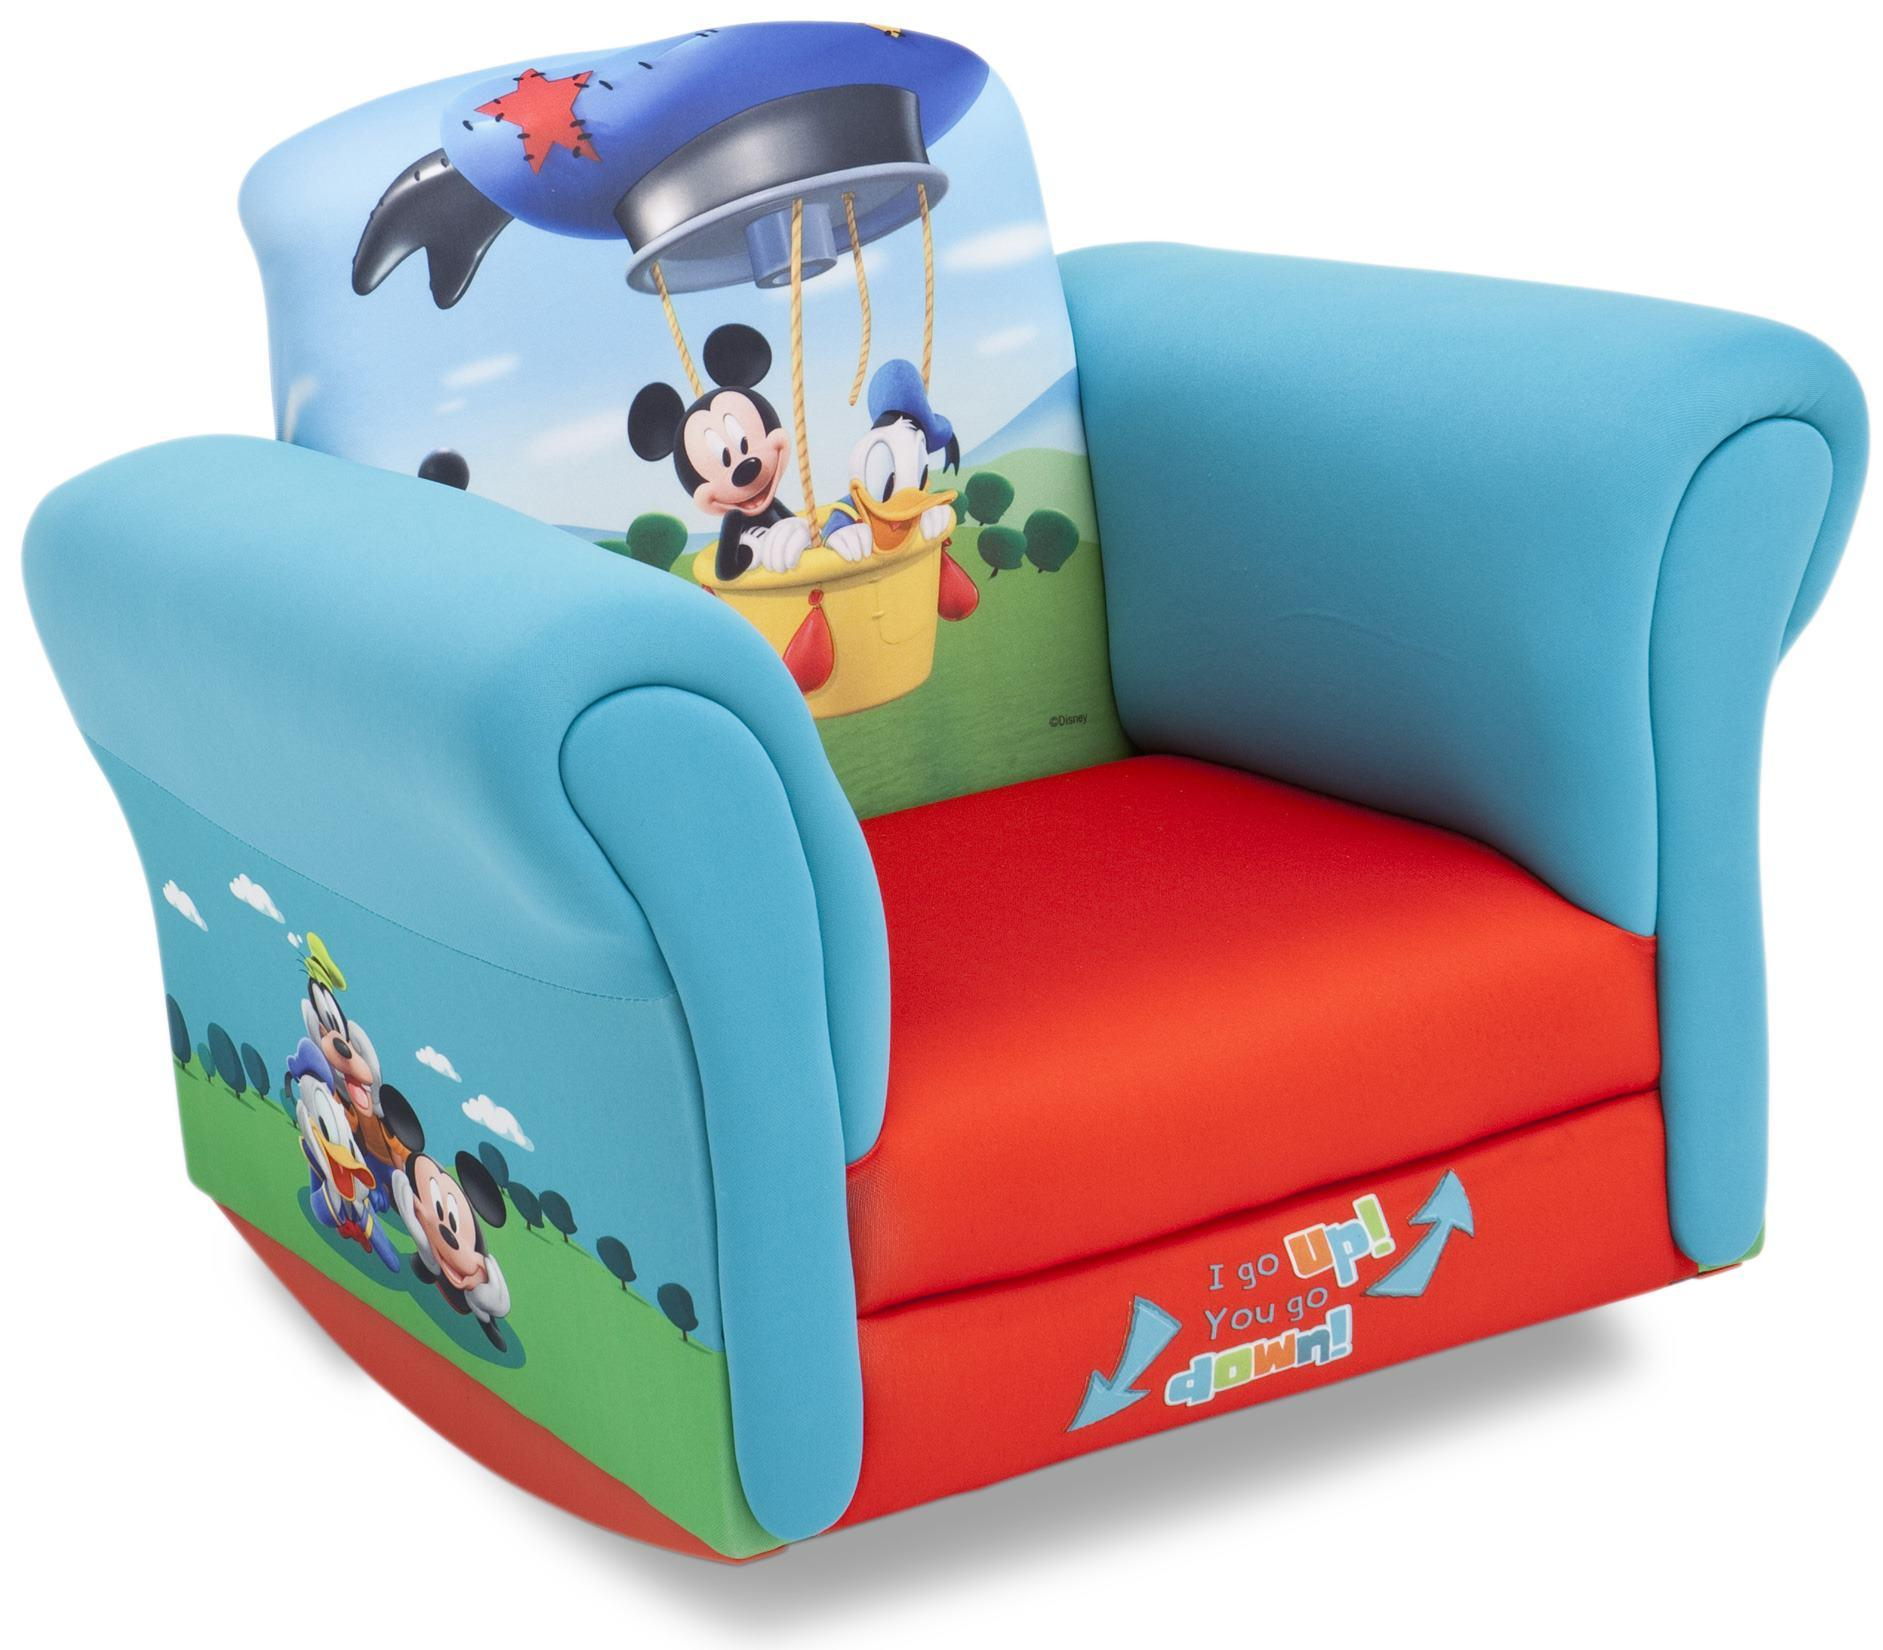 Chairs For Babies Delta Upholstered Child 39s Mickey Mouse Rocking Chair Kmart